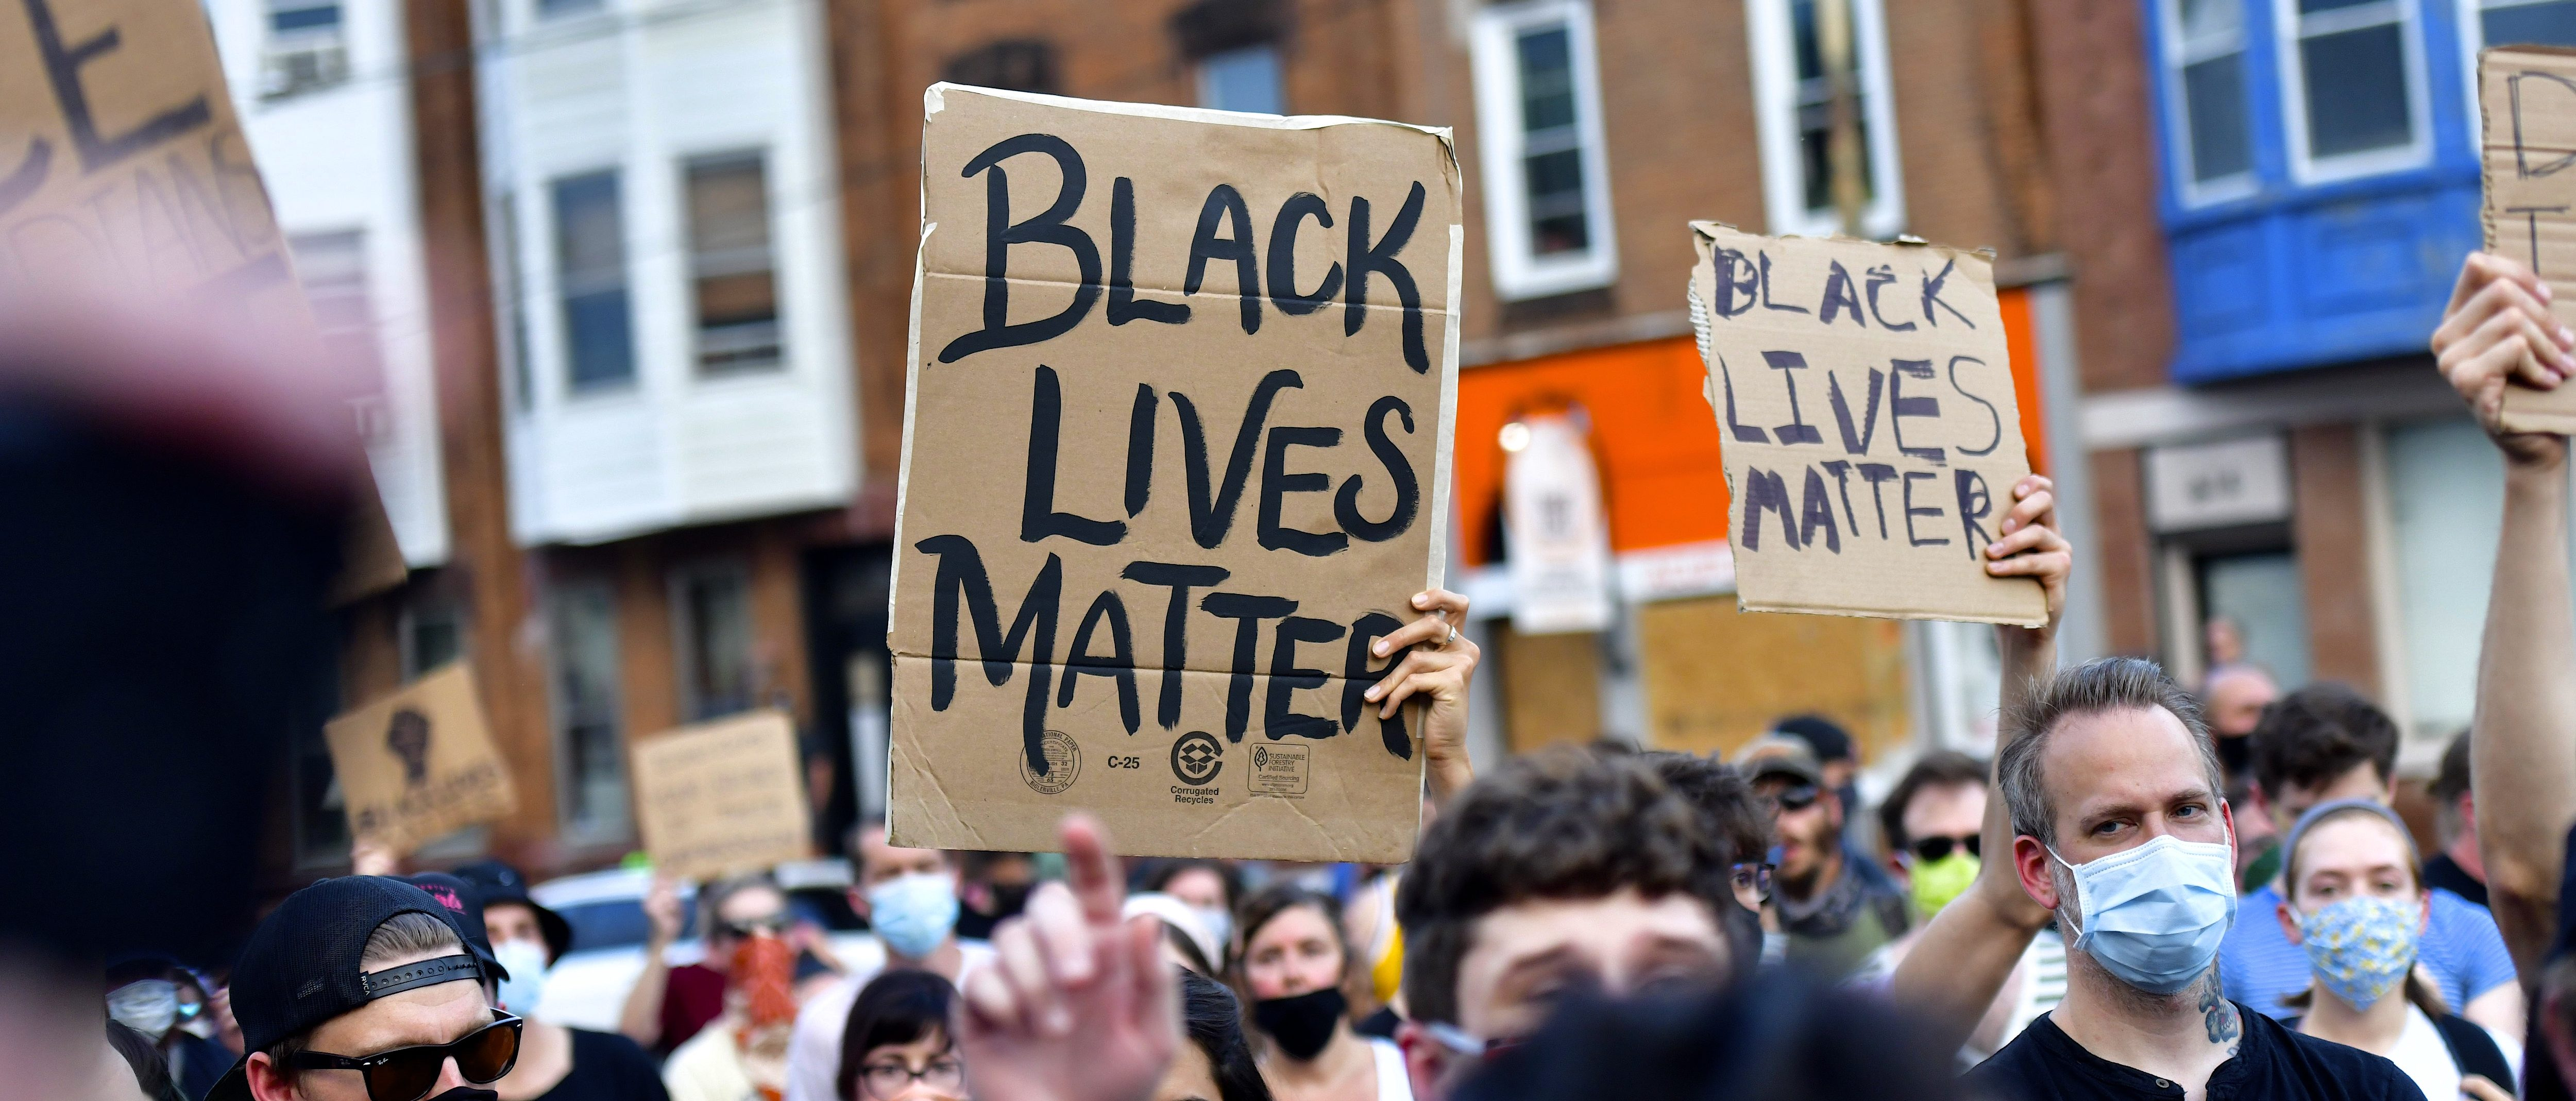 Activists gather in protest outside the 26th Police Precinct on June 3, 2020 in Philadelphia, Pennsylvania. (Photo: Mark Makela/Getty Images)